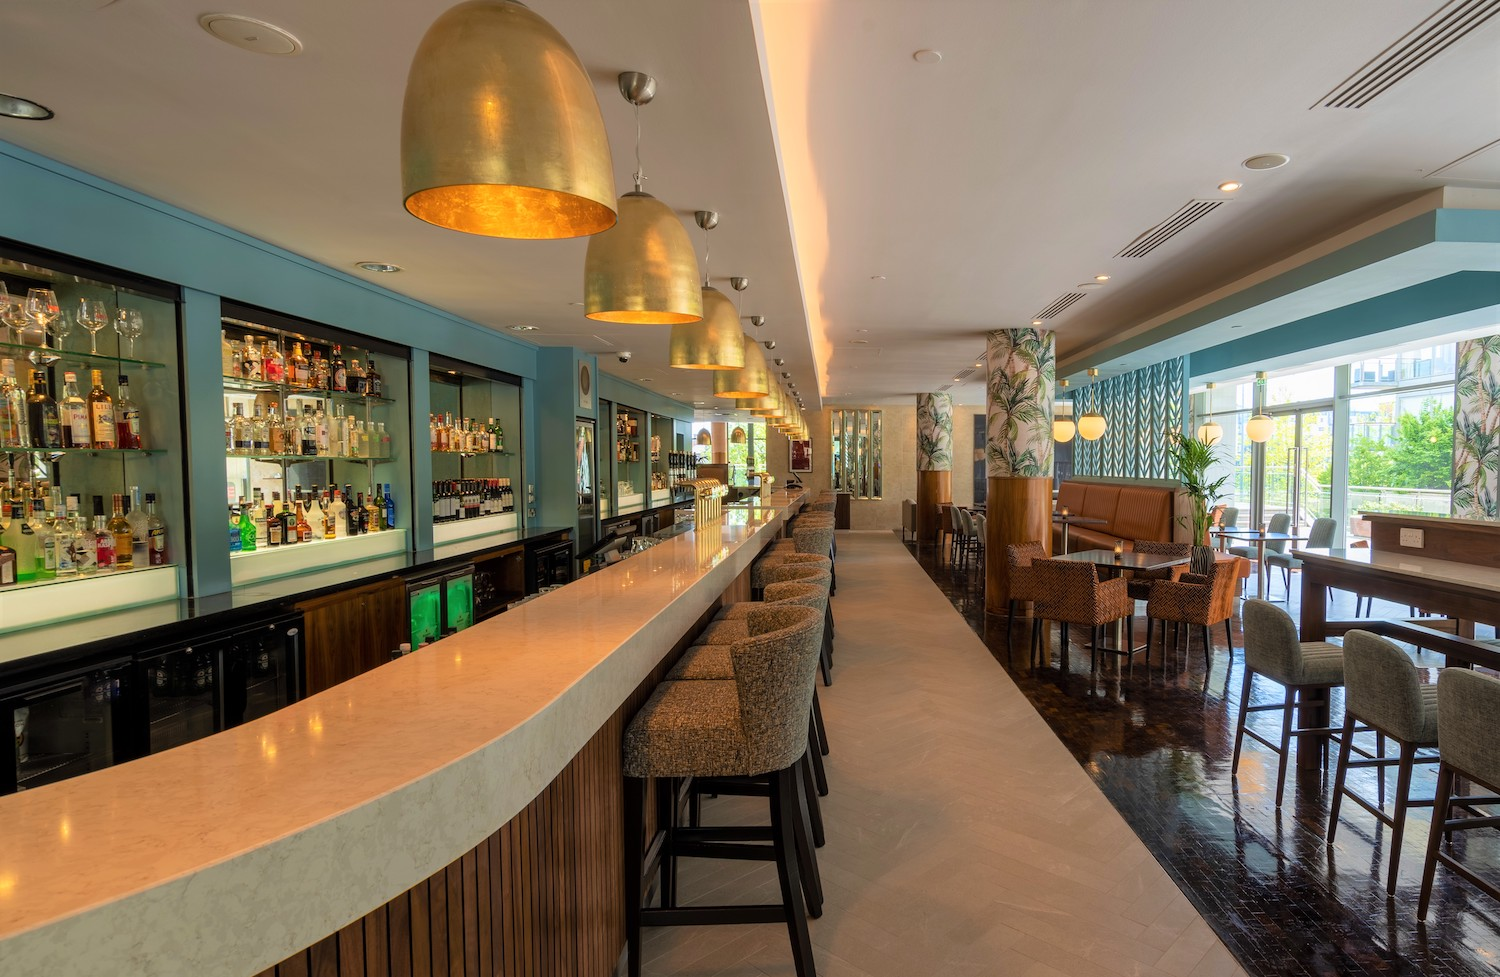 The interior of the new, beautifully designed Limerick Strand Bar and Restaurant.